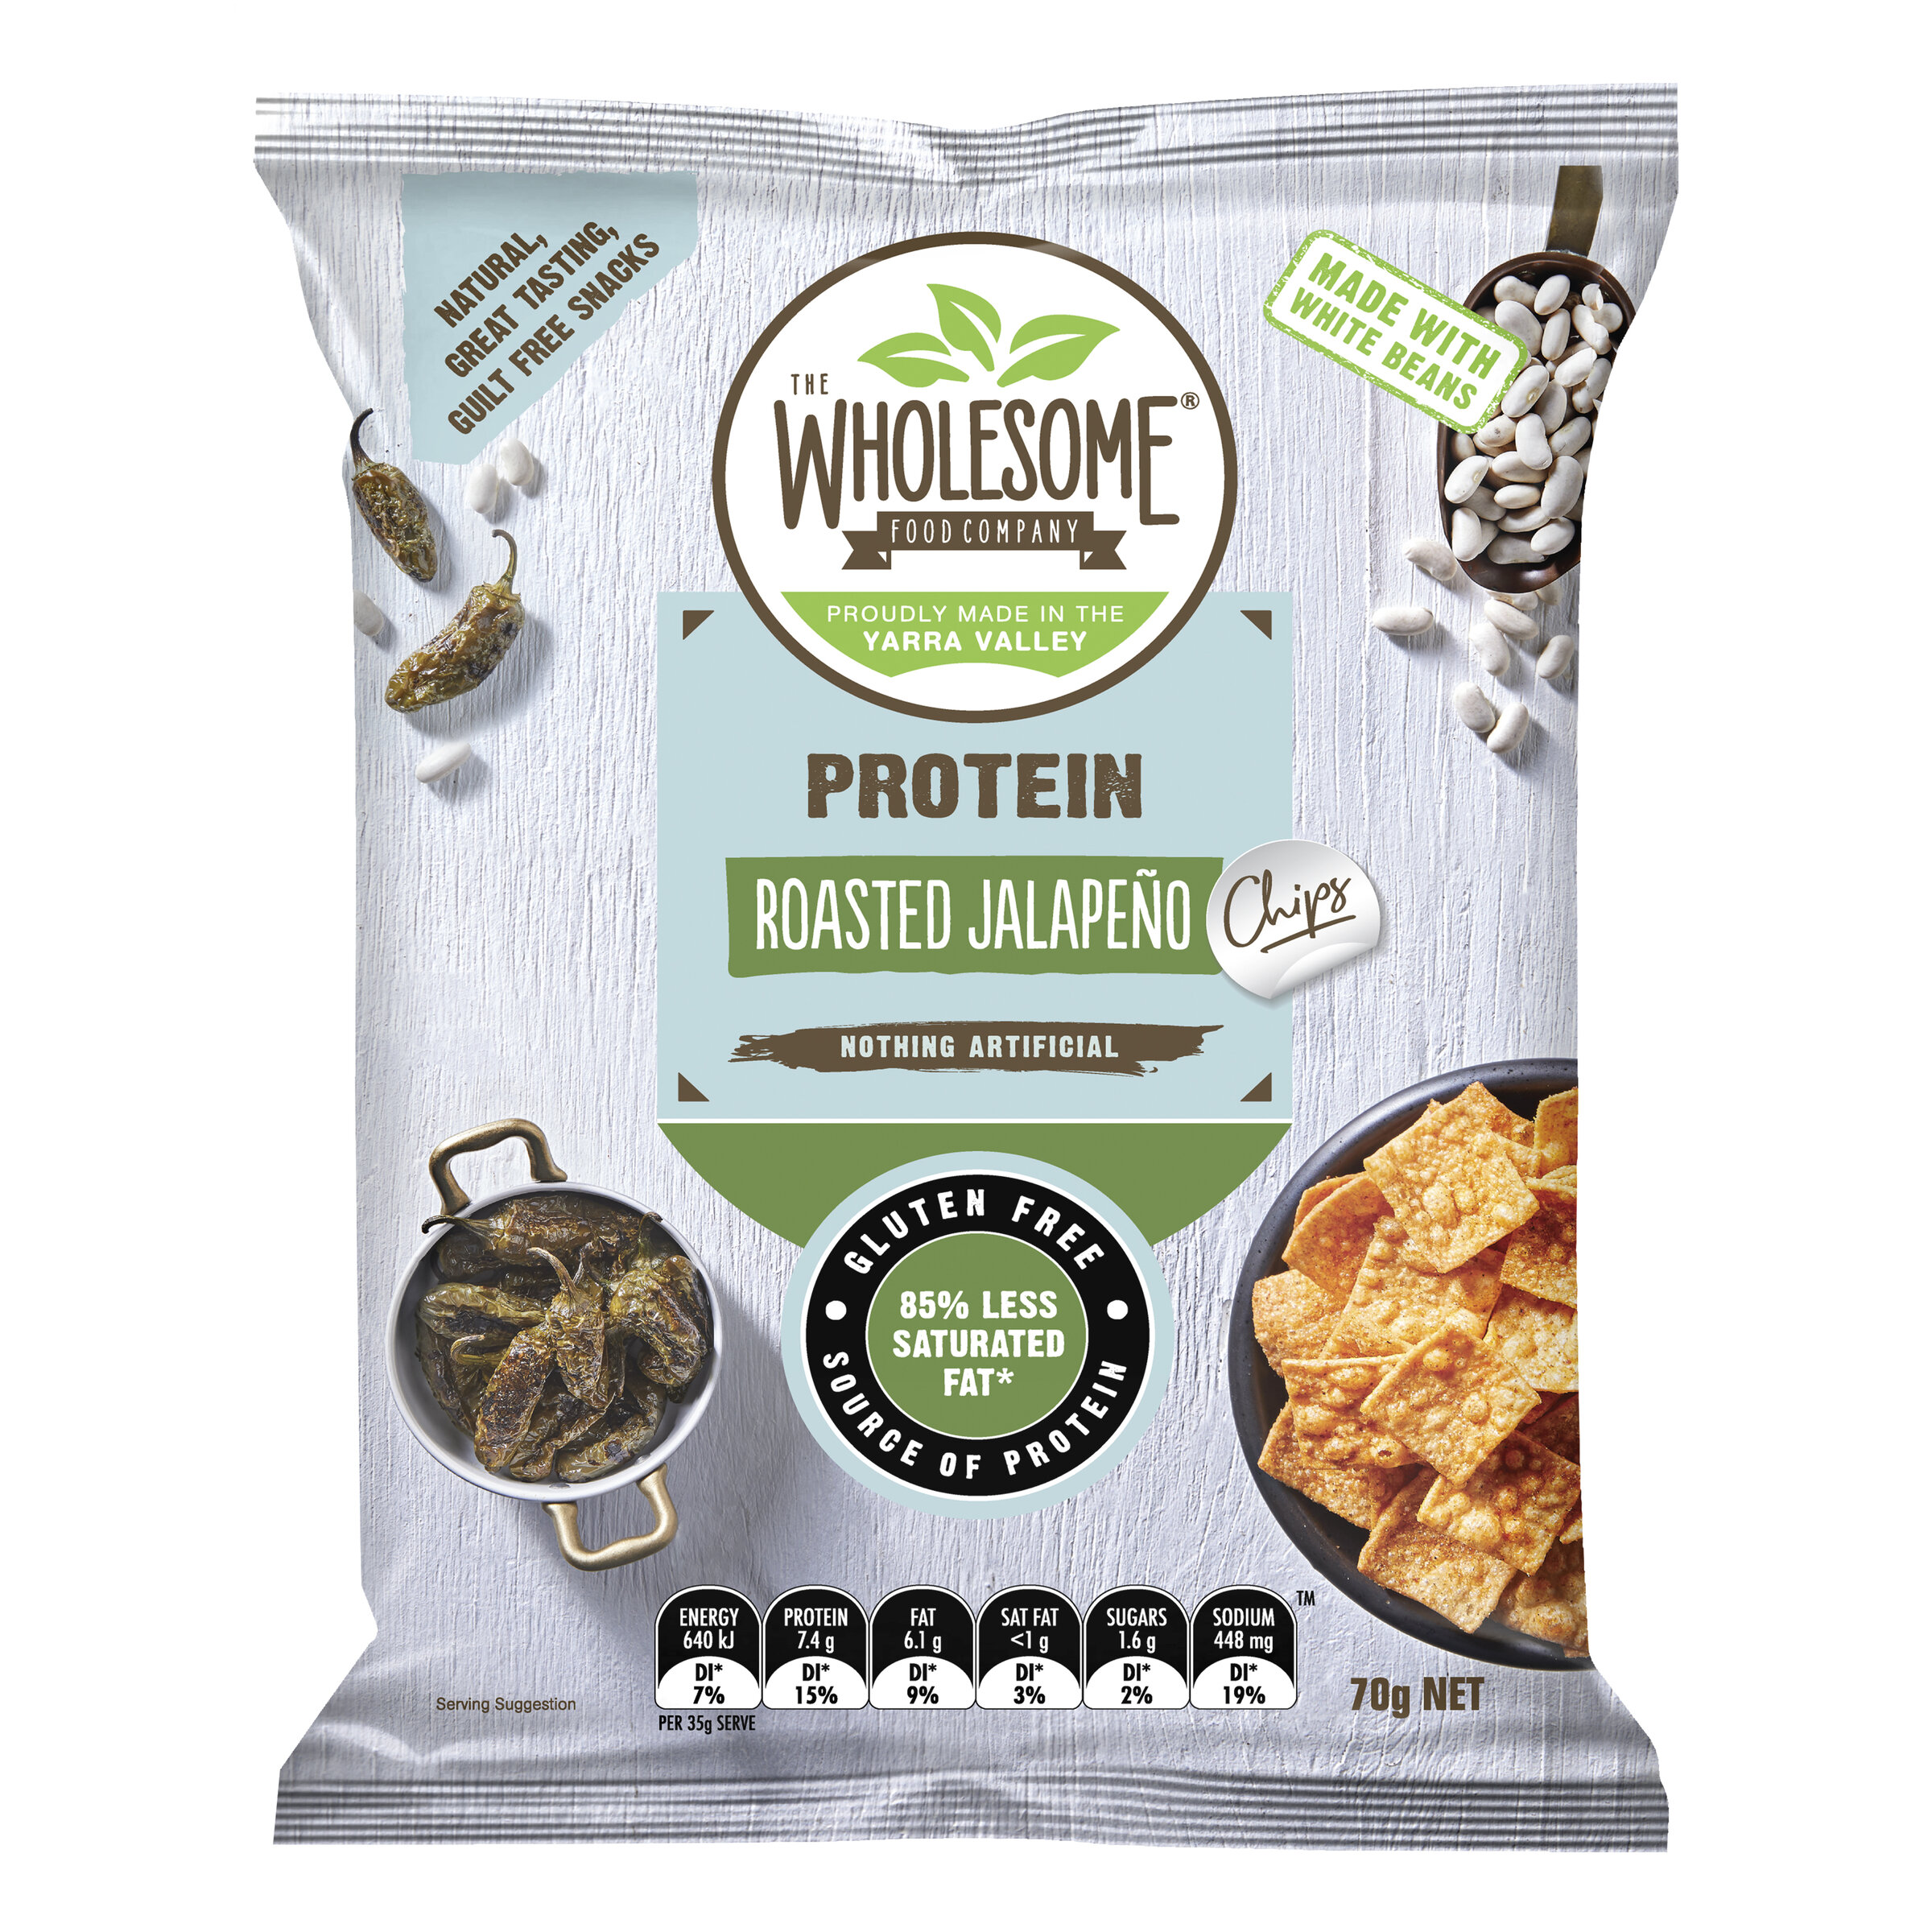 Roasted Jalapeno Protein Front of pack.jpg